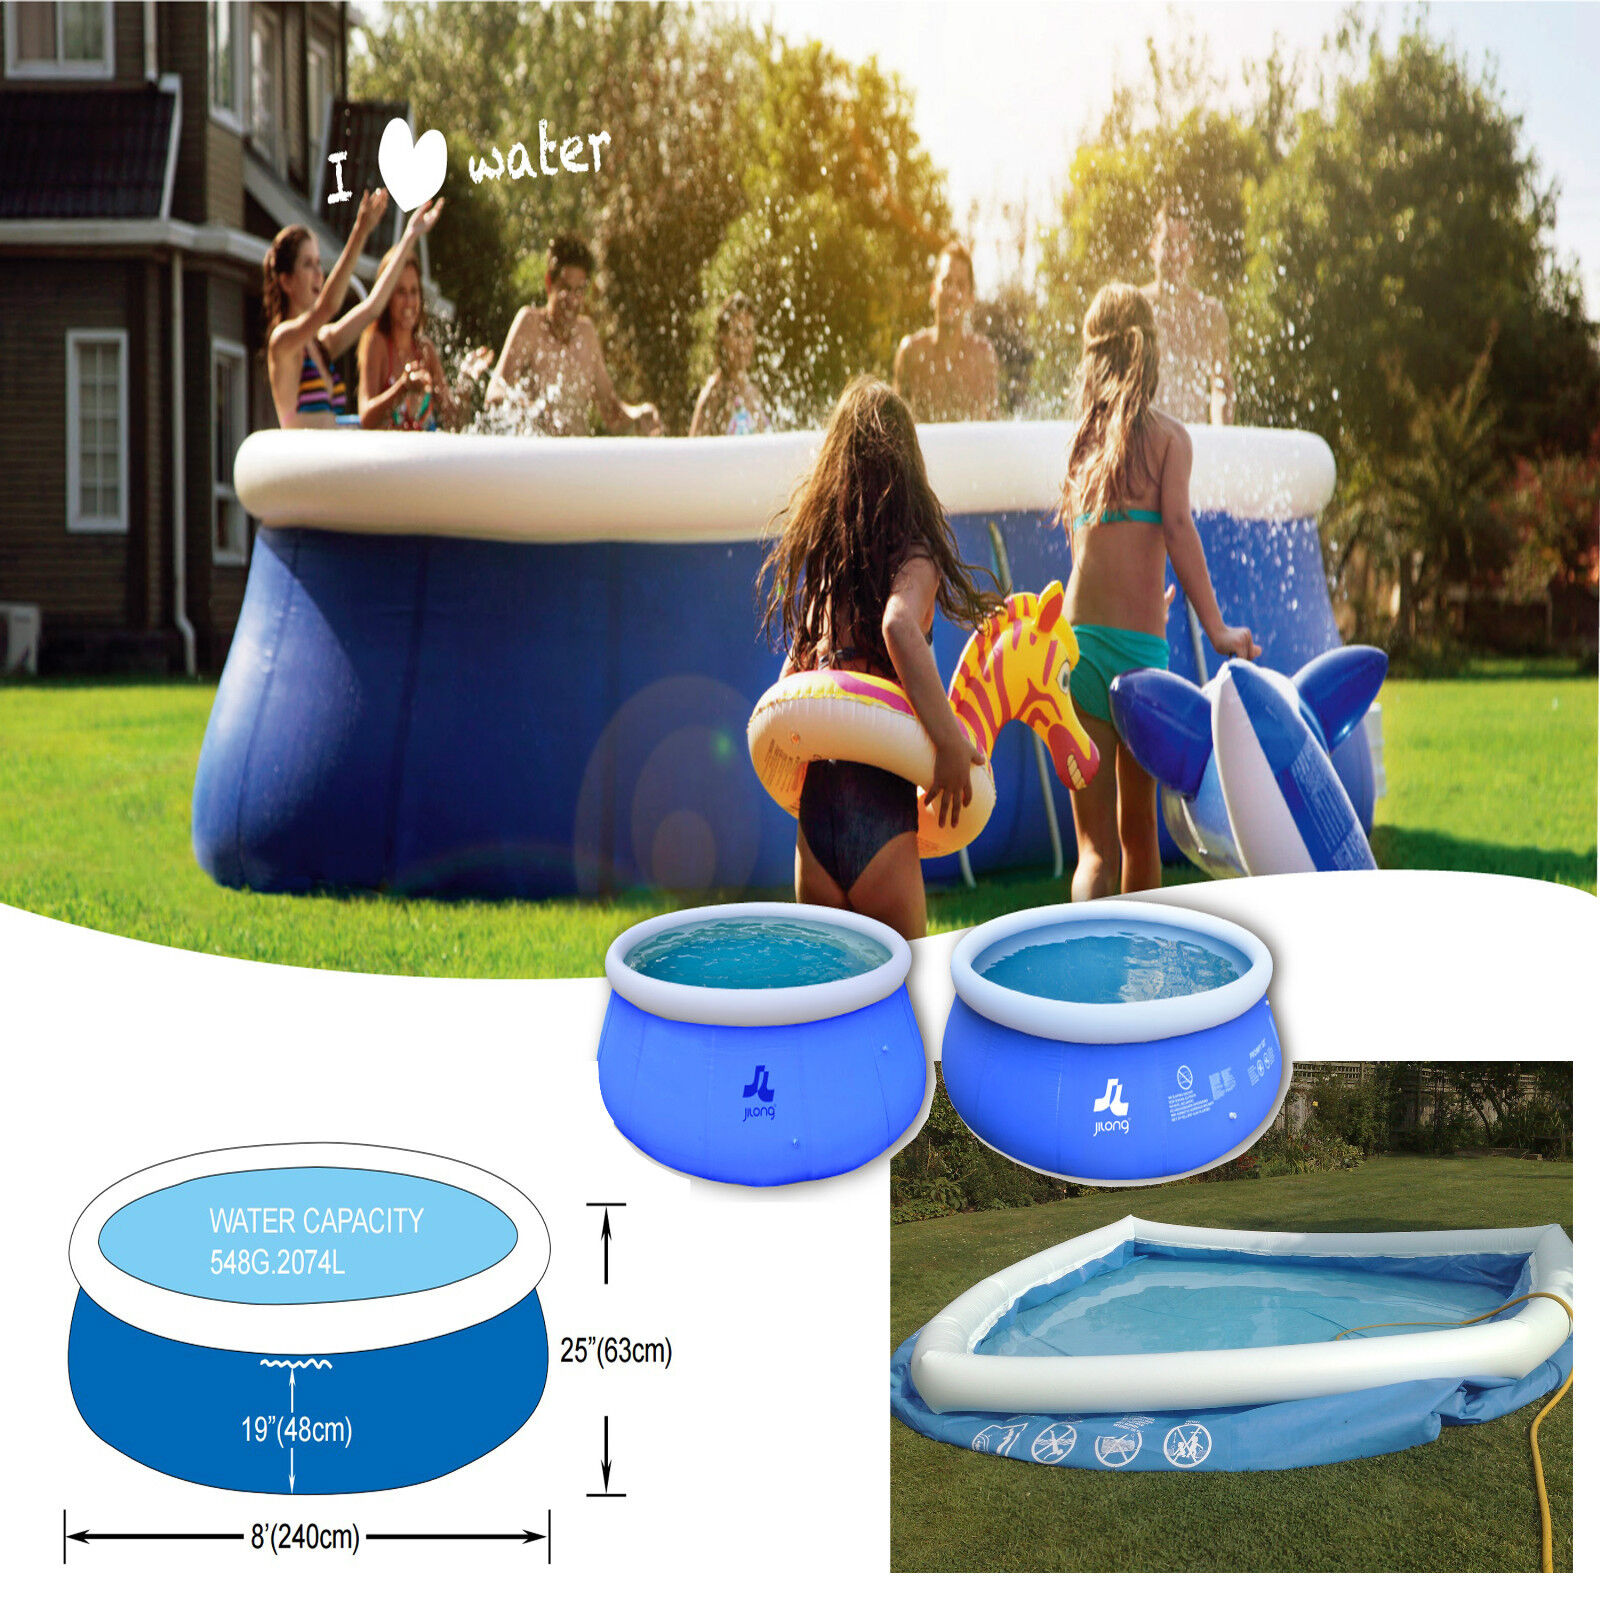 Inflatable Swimming Pool 8ft Outdoor Garden Family Fun Kids Large Round Paddling Ebay